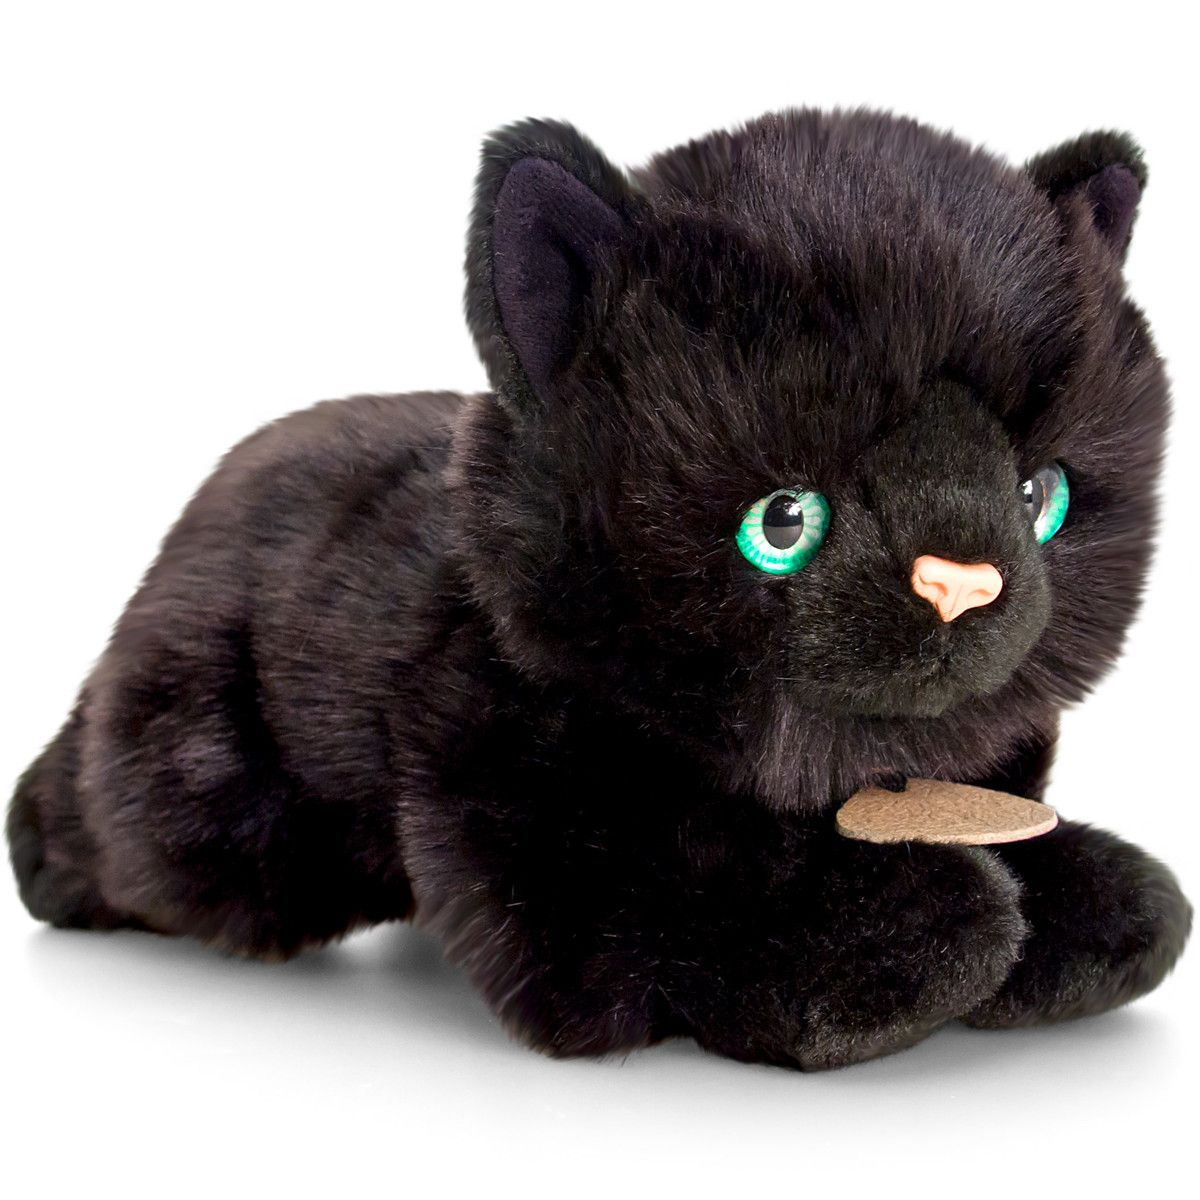 Smudge Plush Black Cat Stuffed Animal Keel Toys Black